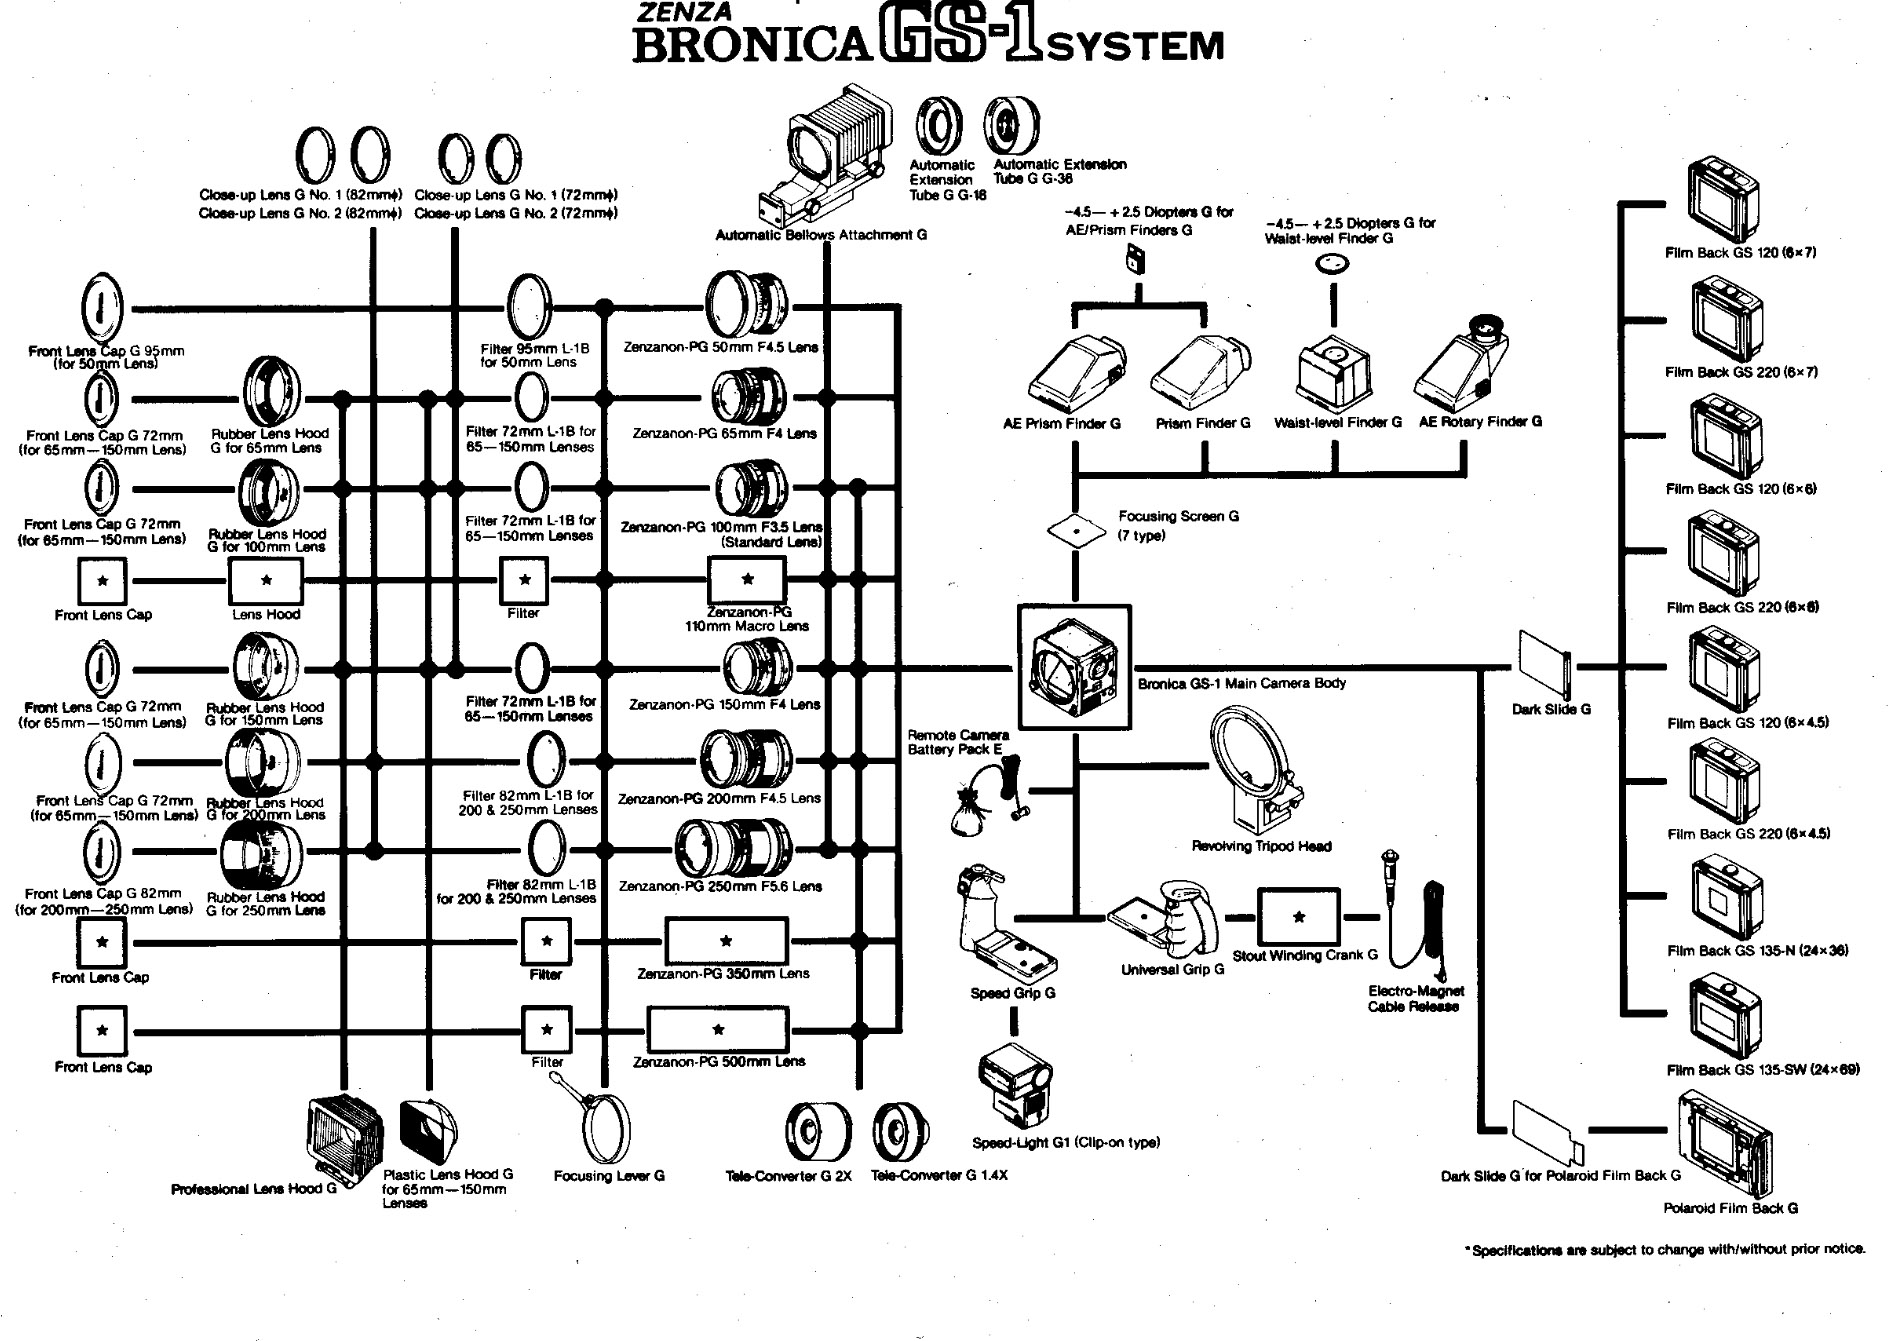 Bronica GS-1 system map